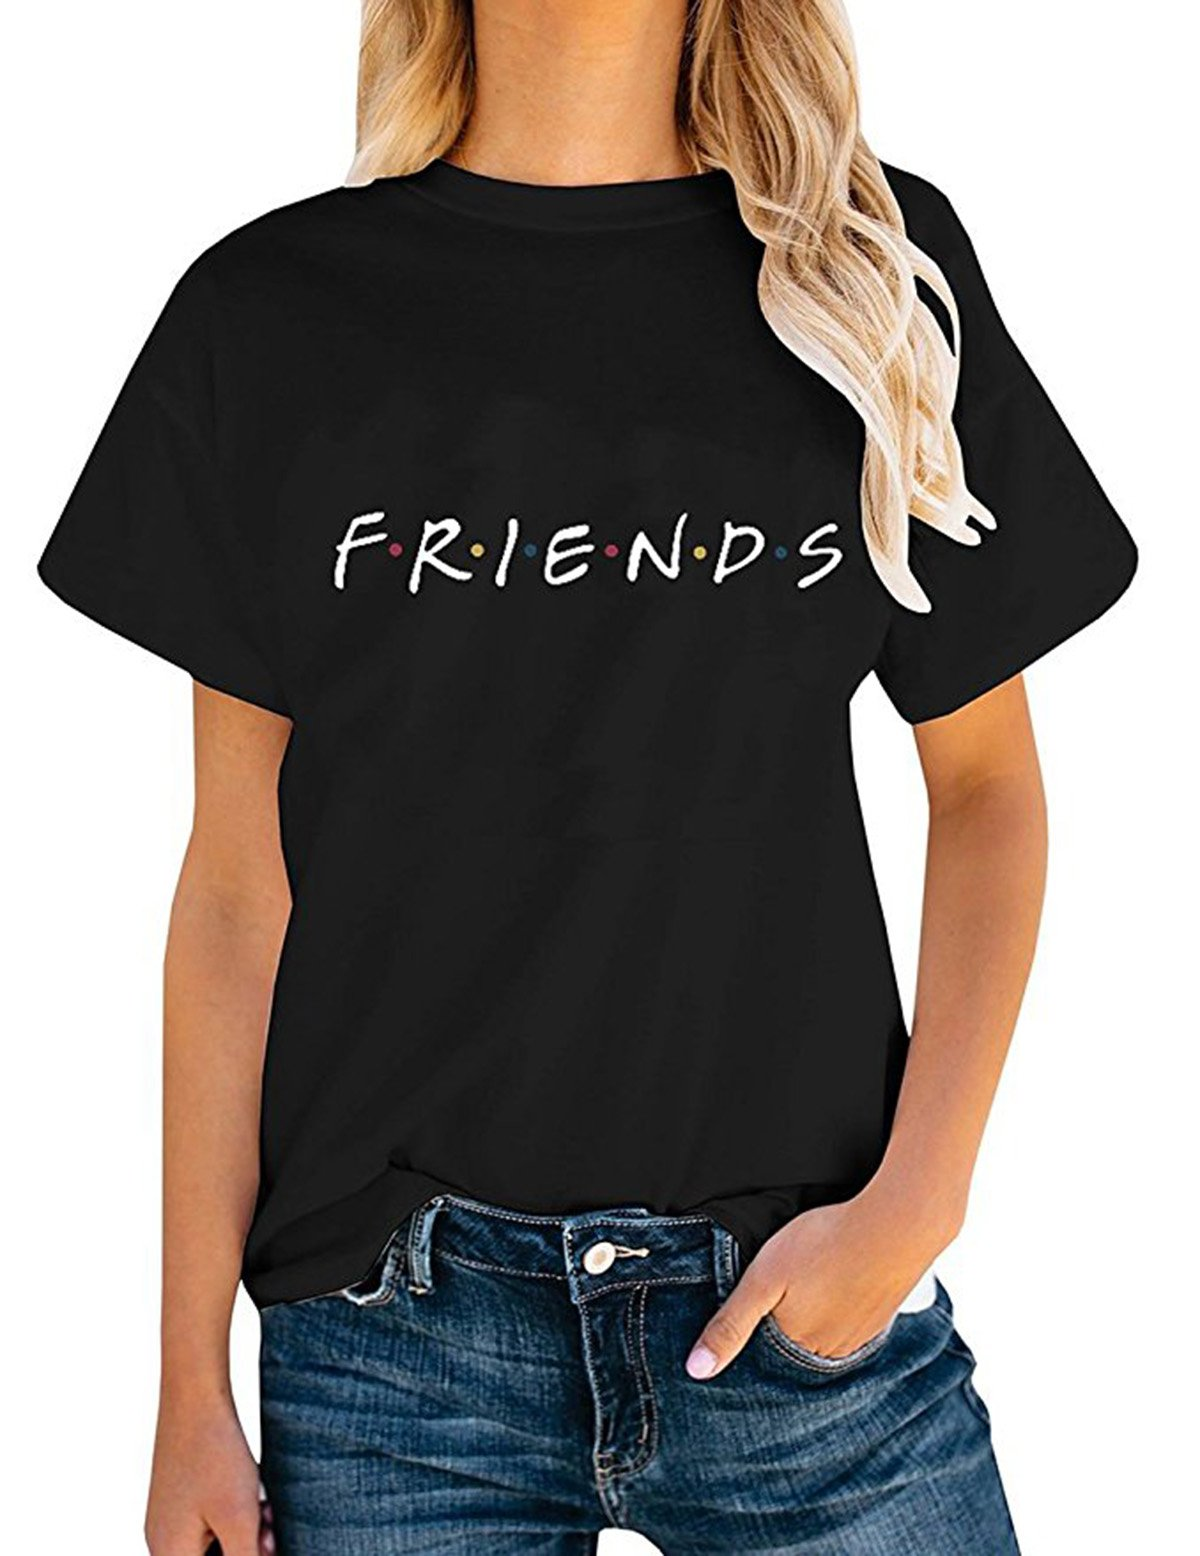 Friends TV Show Shirt Summer Graphic Tees Tops Black M